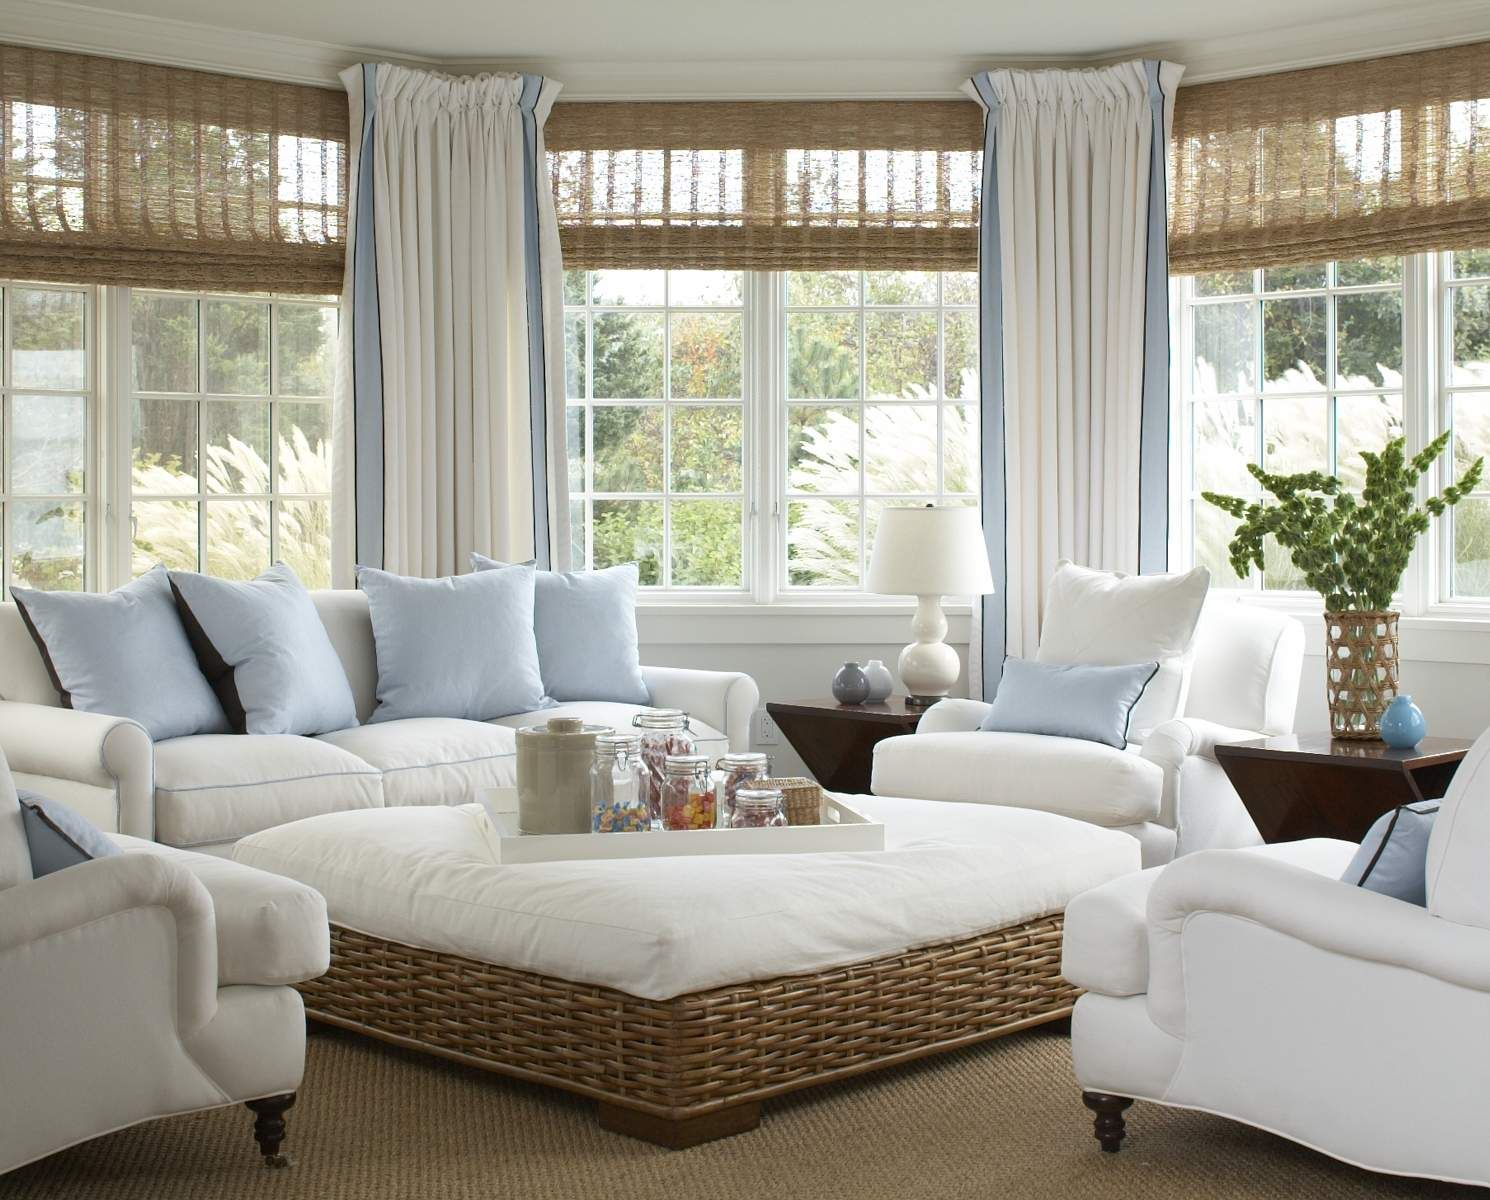 Beautiful room - Decorating A Sunroom Beach Style | stacystyles blog |  Stacy Kunstel: style